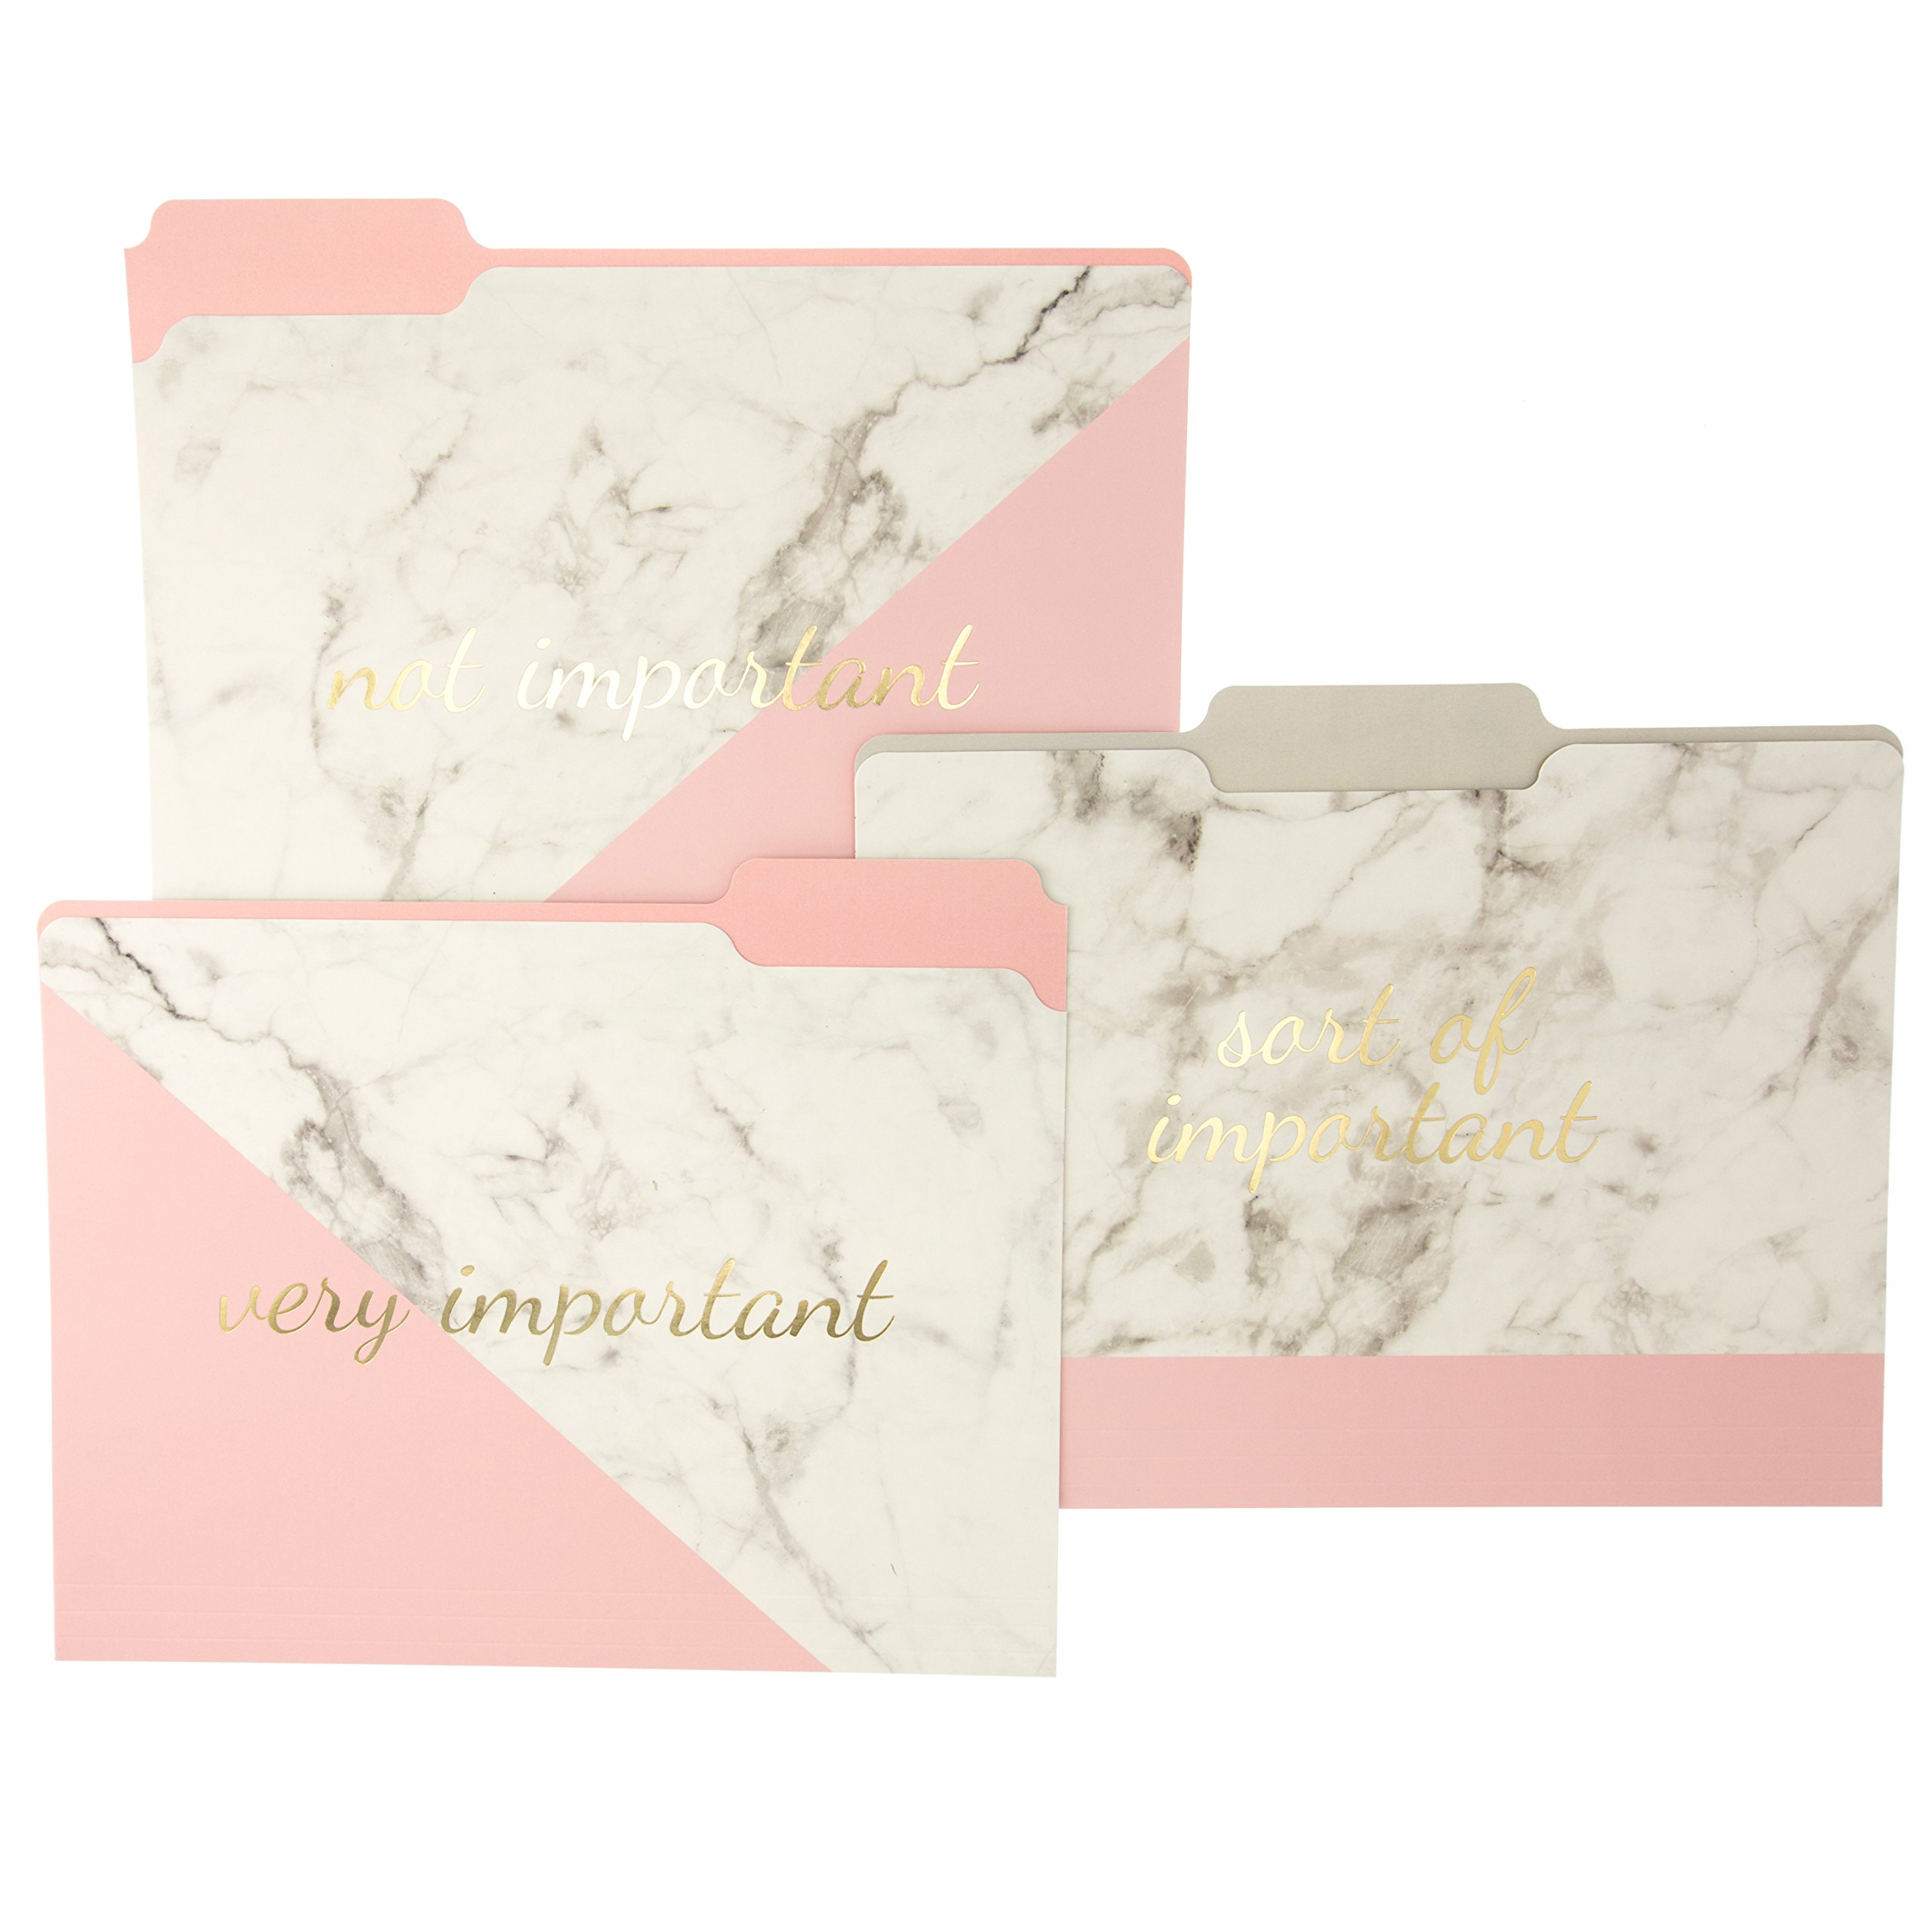 Graphique Blush Marble File Folder Set – File Set Includes 9 Folders and 3 Unique''Important'' Designs, Embellished w/Gold Foil on Durable Triple-Scored Coated Cardstock, 11.75'' x 9.5'' by Graphique